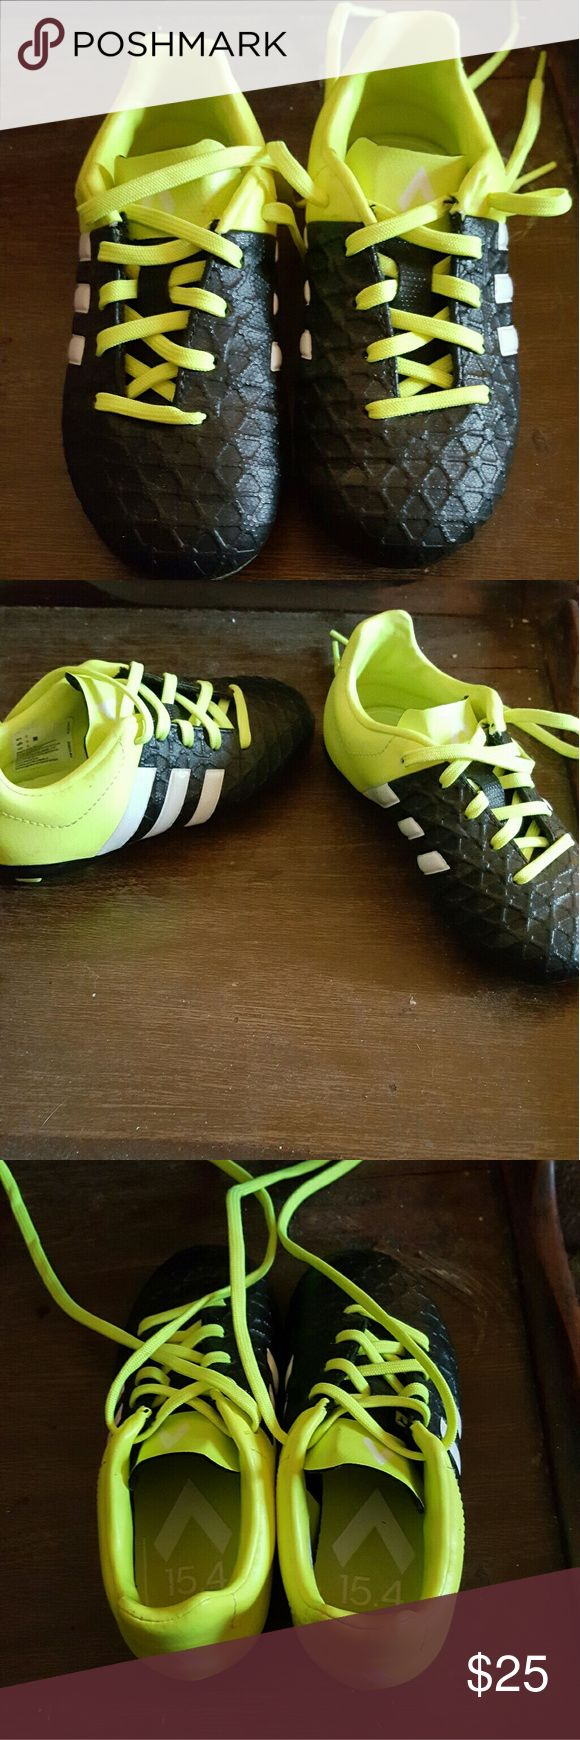 Toddler adidas soccer cleats These cleats are brand new my son only worn them 2 times. Price negotiable! adidas Shoes